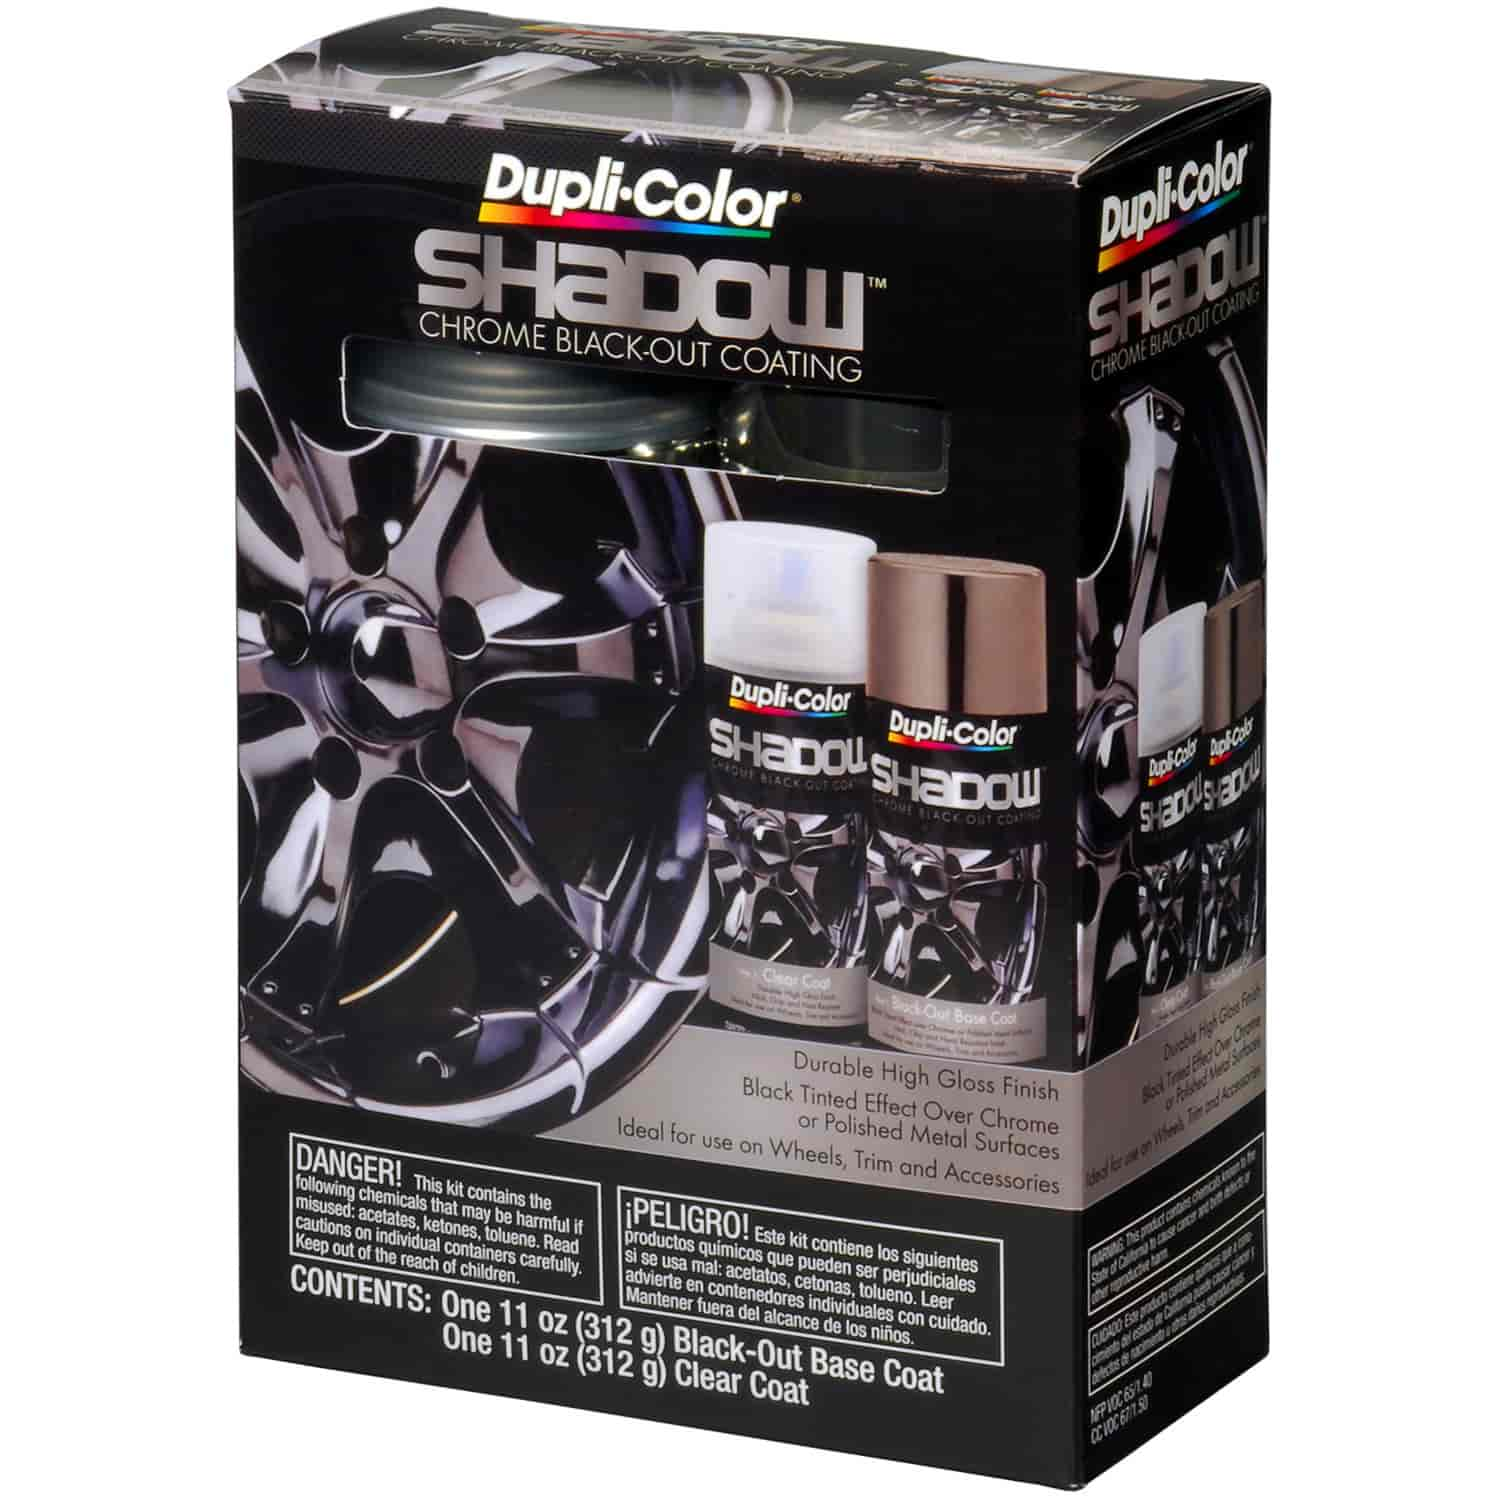 Duplicolor SHD1000 - Duplicolor Shadow Chrome Black-Out Coating Kit